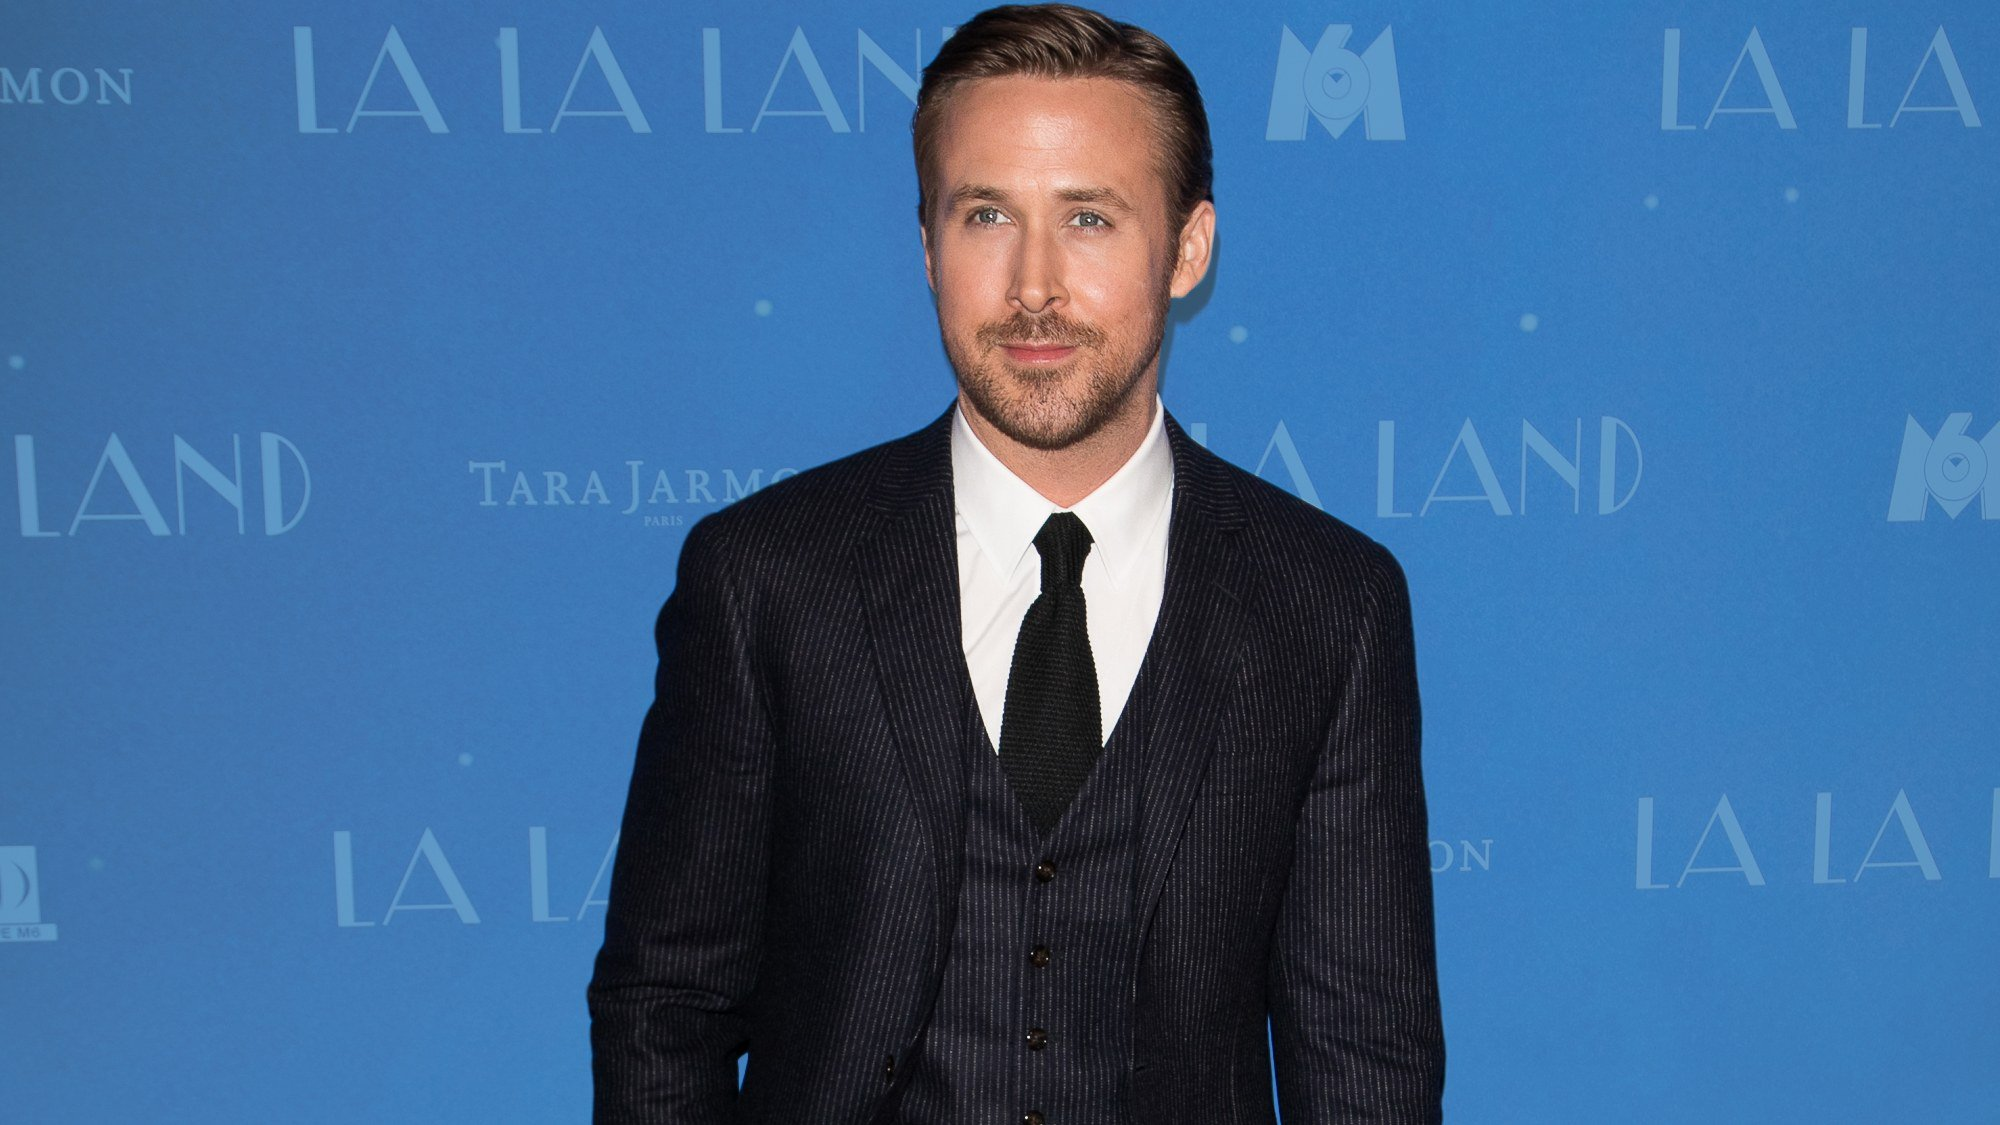 You should buy Ryan Gosling's suit right now (because you can) https://t.co/SCYauq2pnI https://t.co/sxpJdJNKKa